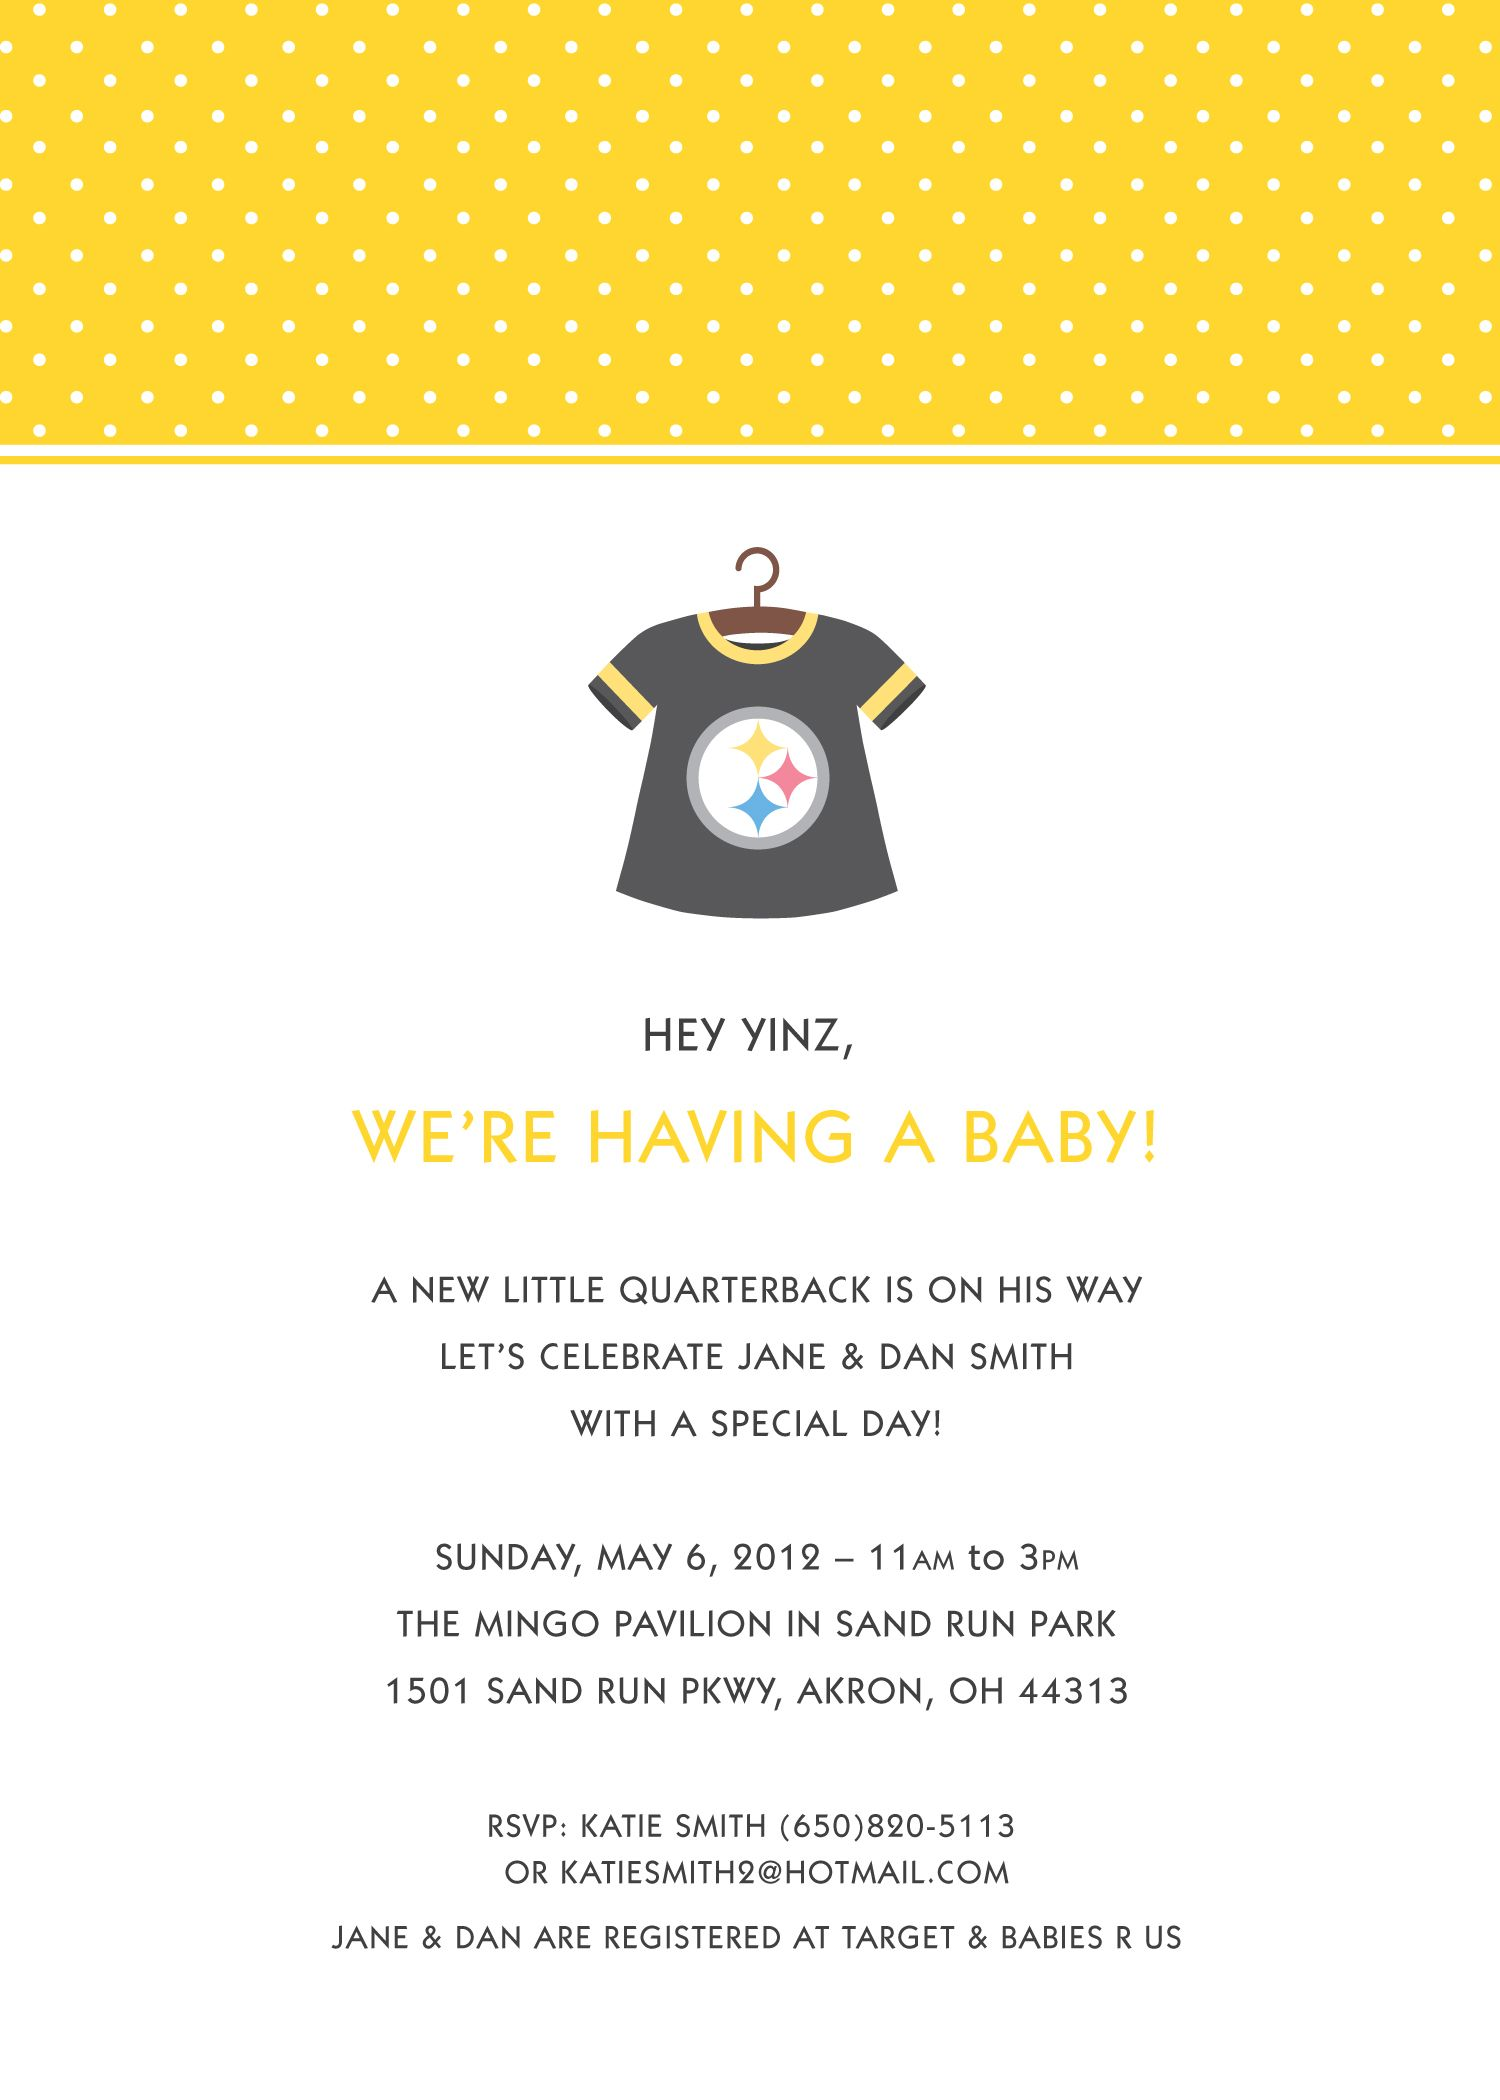 Steelers Baby Shower www.paperheartsinvites.etsy.com | Invitations ...